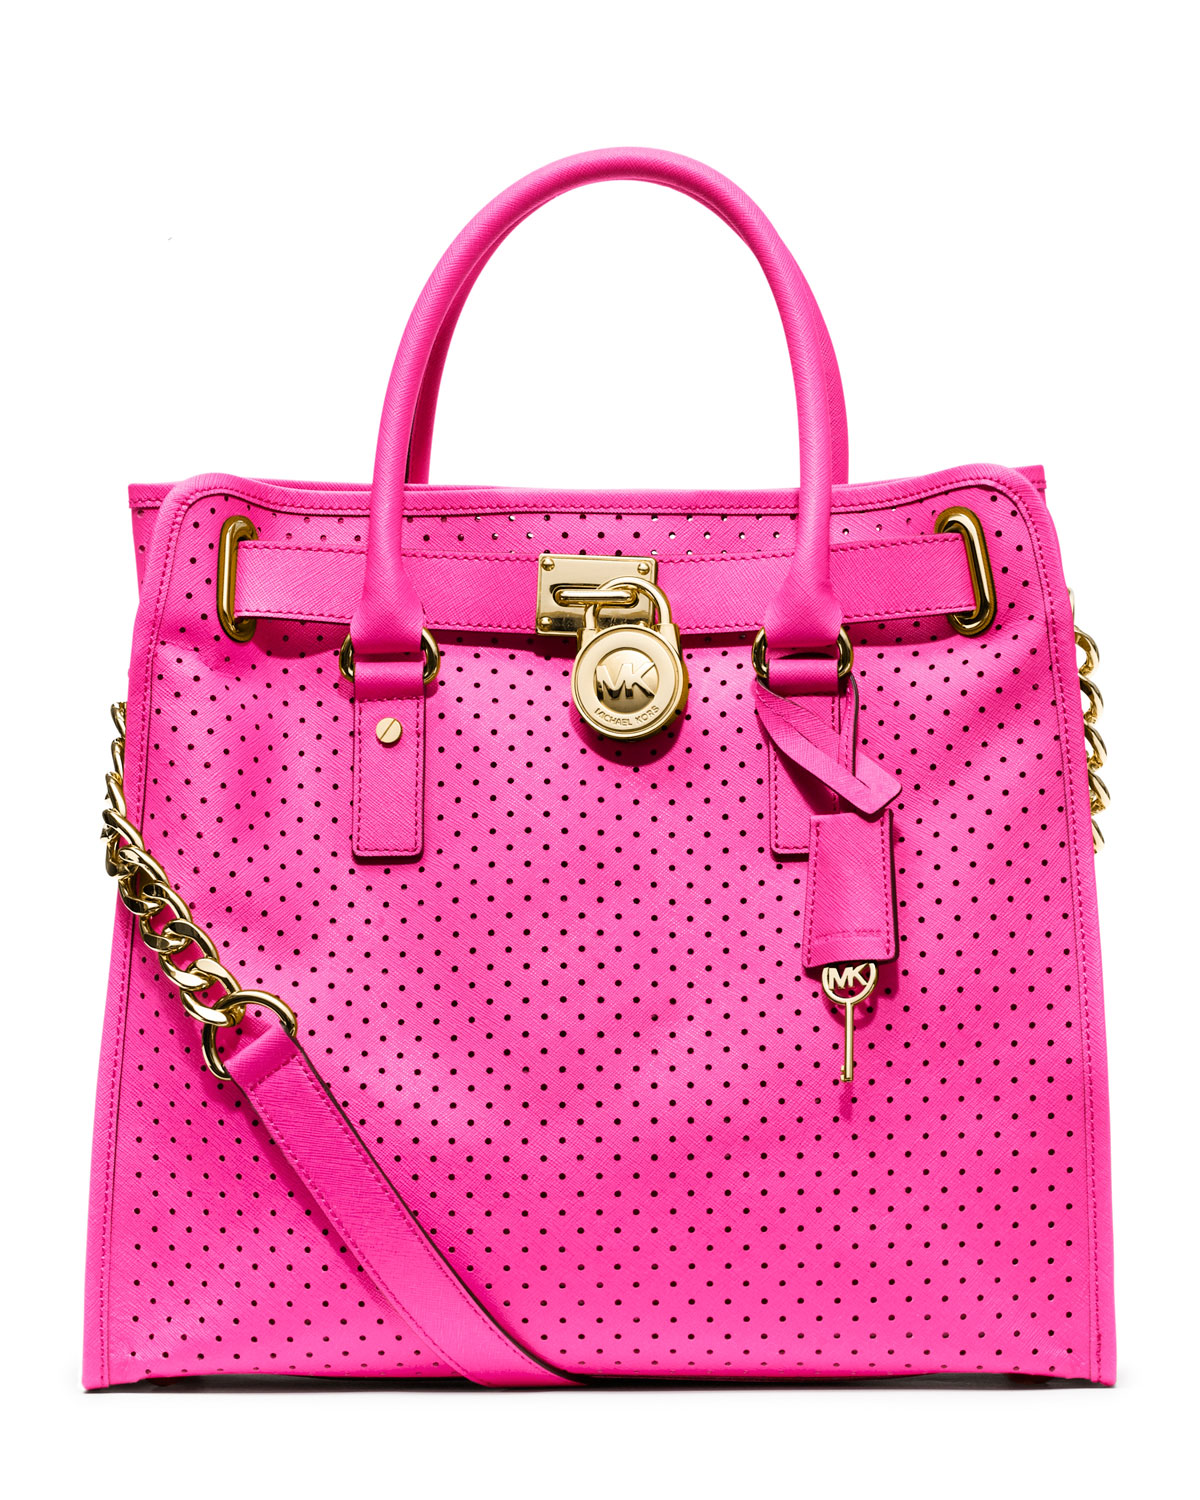 f879b3406b964d Michael Kors Large Hamilton Perforated Saffiano Tote in Pink - Lyst